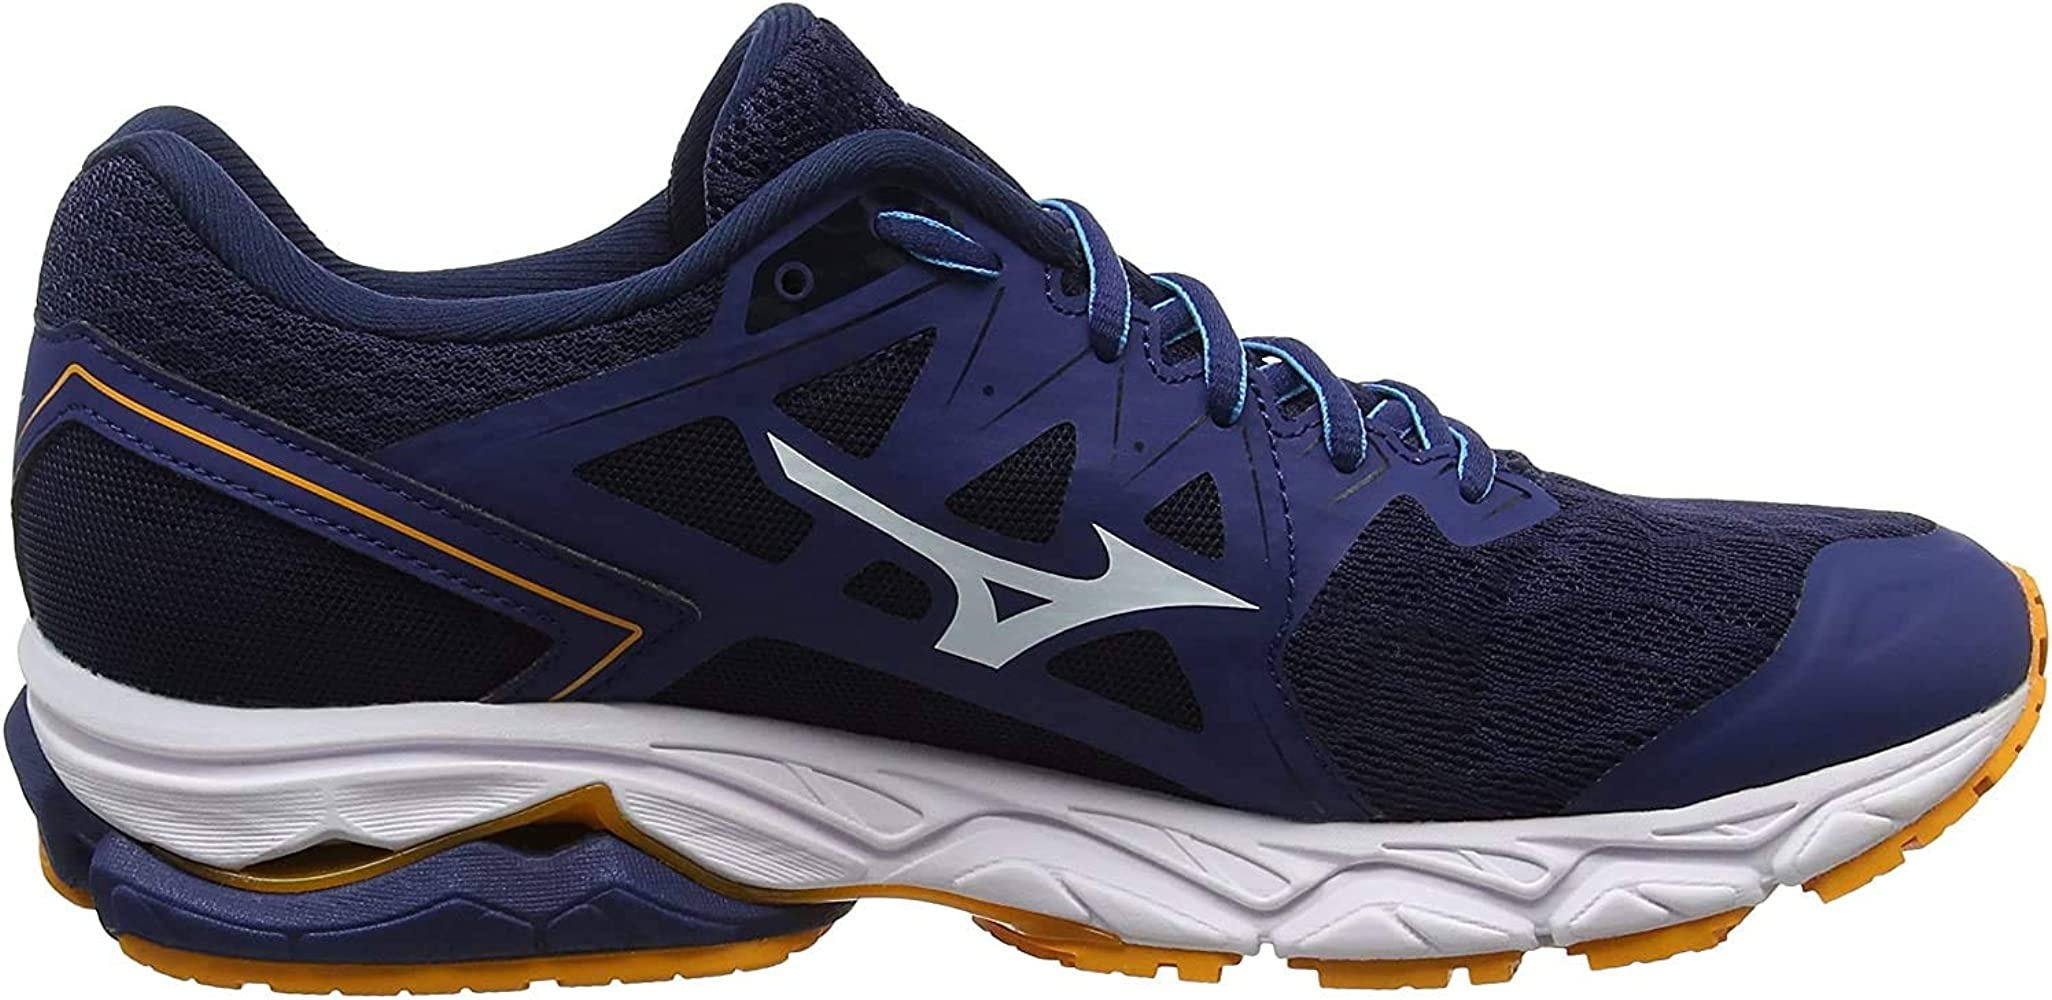 Mizuno Wave Ultima 10, Zapatillas de Running para Hombre, Azul (Estate Blue/White/Flame Orange 01), 39 EU: Amazon.es: Zapatos y complementos